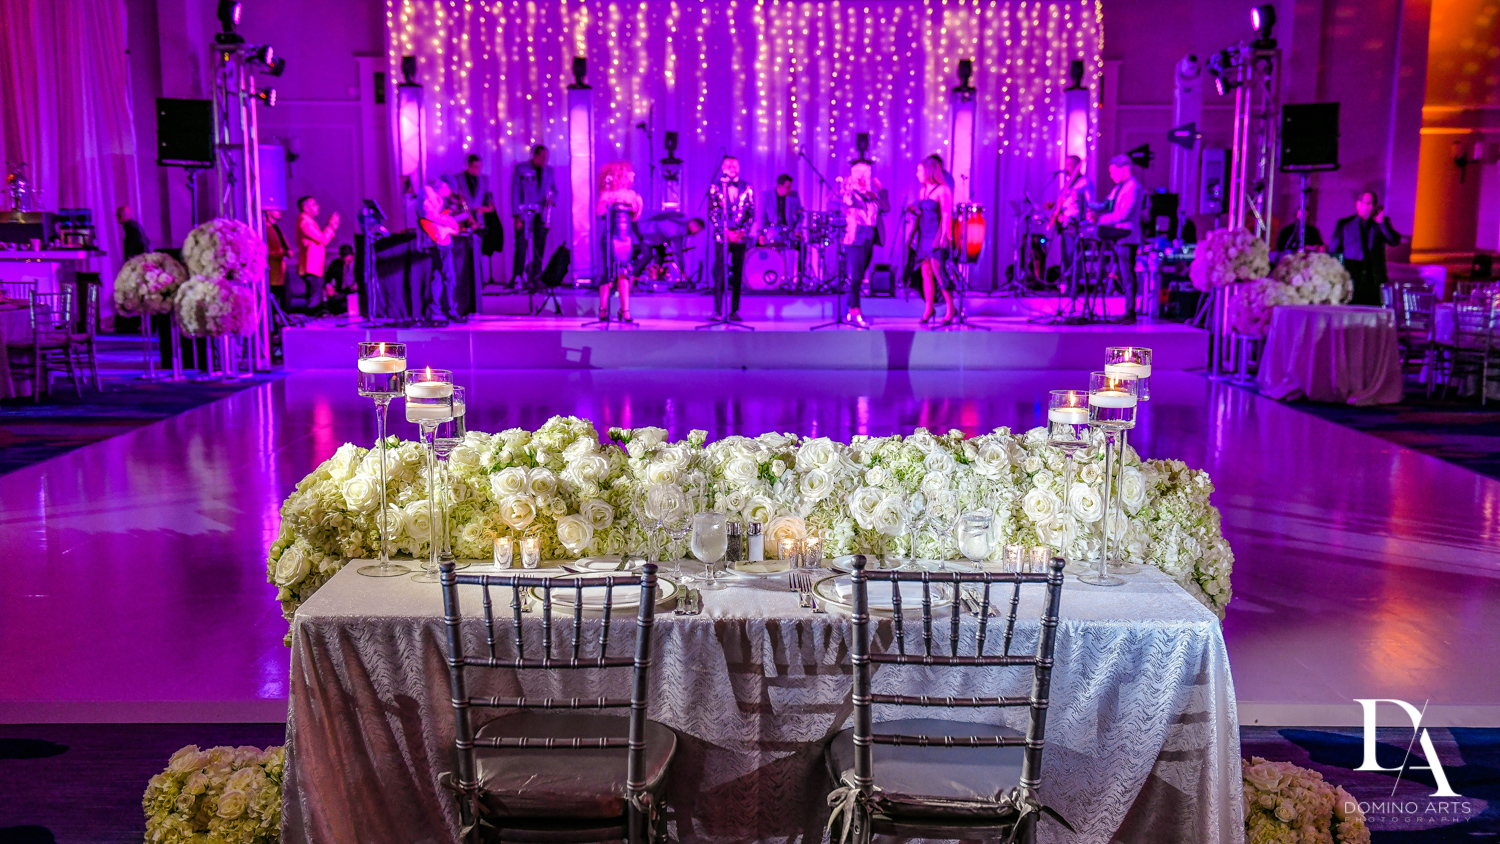 white flowers purple room at A Ritz Carlton Wedding in Key Biscayne by Domino Arts Photography